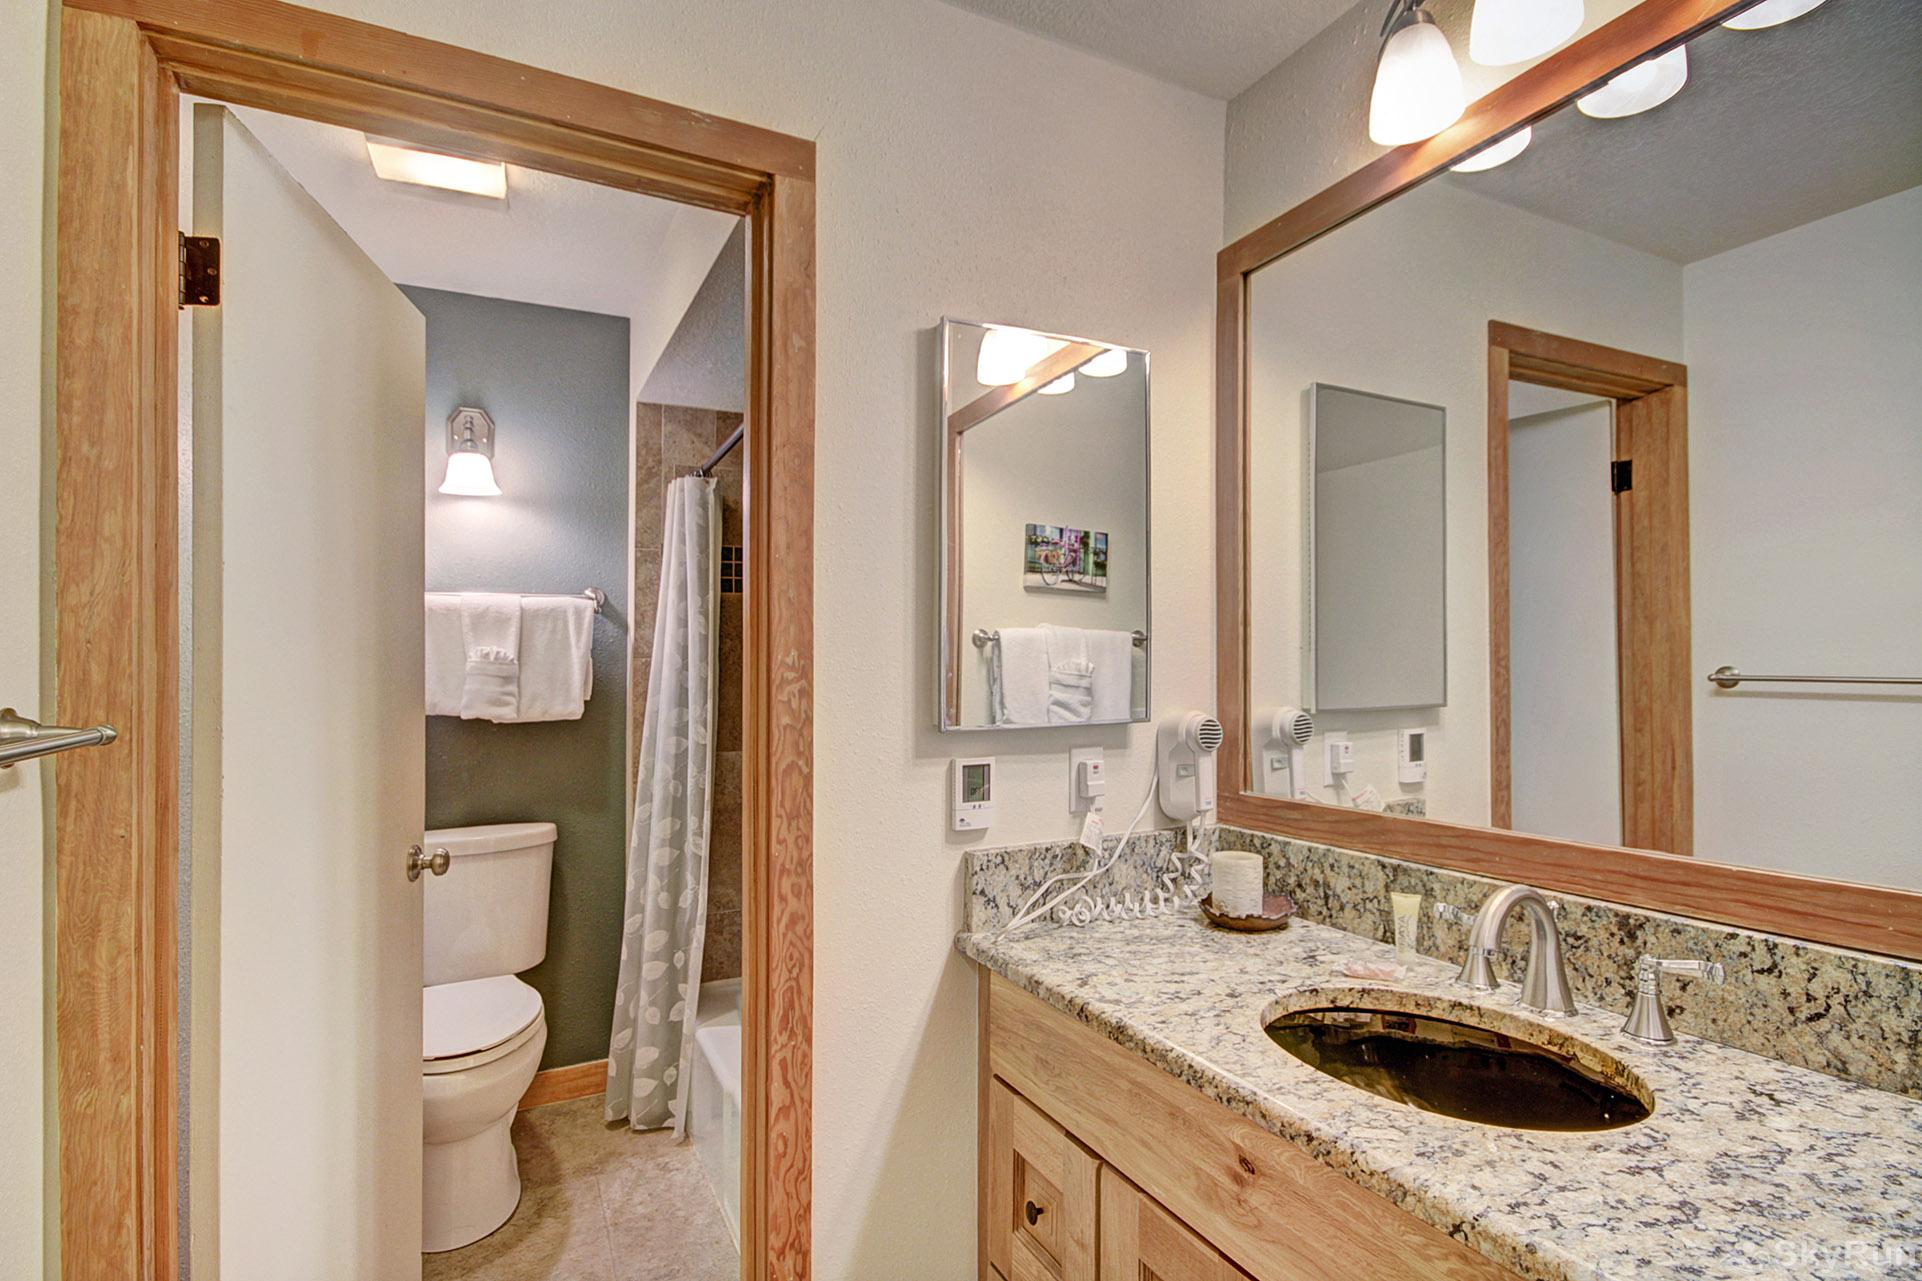 2019 Lodgepole Hall Bathroom